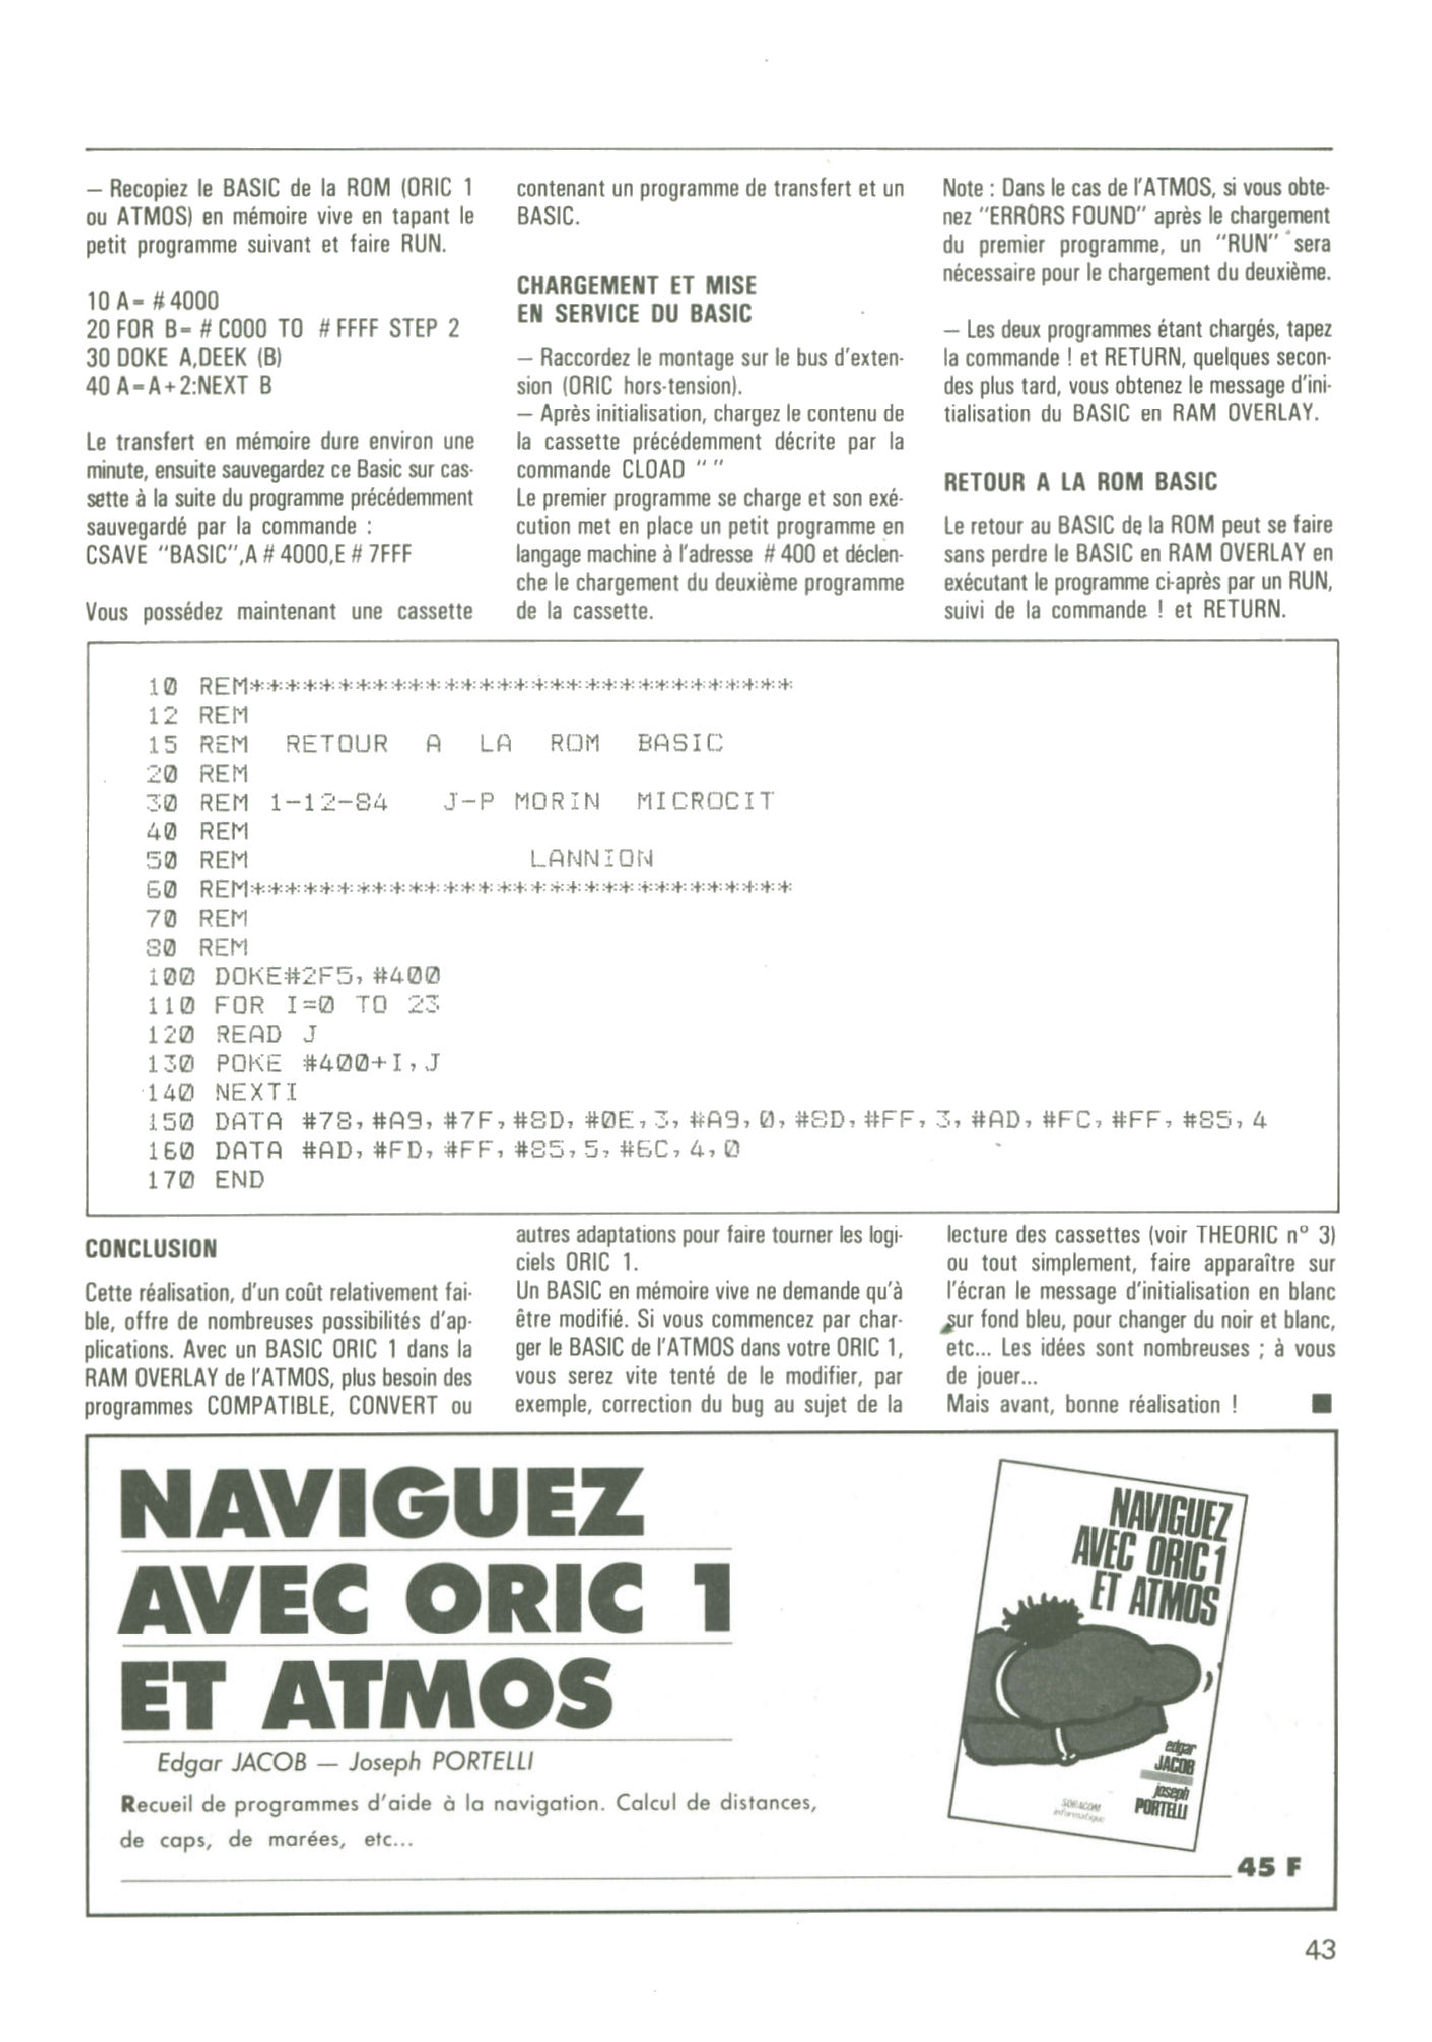 Theoric 05 - Février 1985 - page 43 ram overlay.jpg